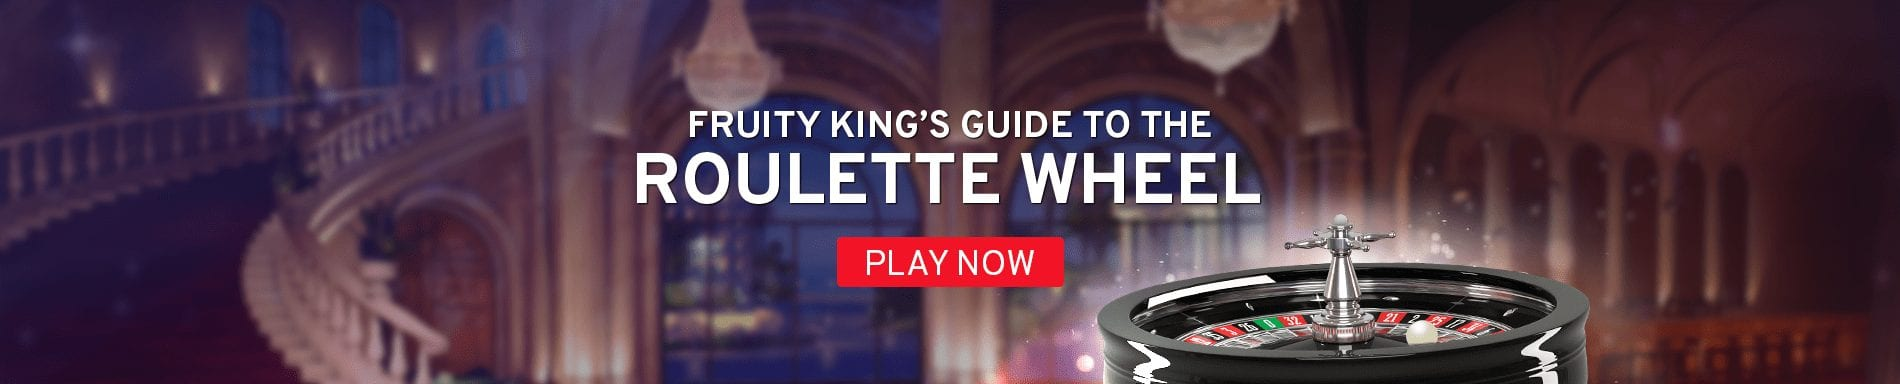 Try Your Luck With LIVE Dealers Now at Fruity King